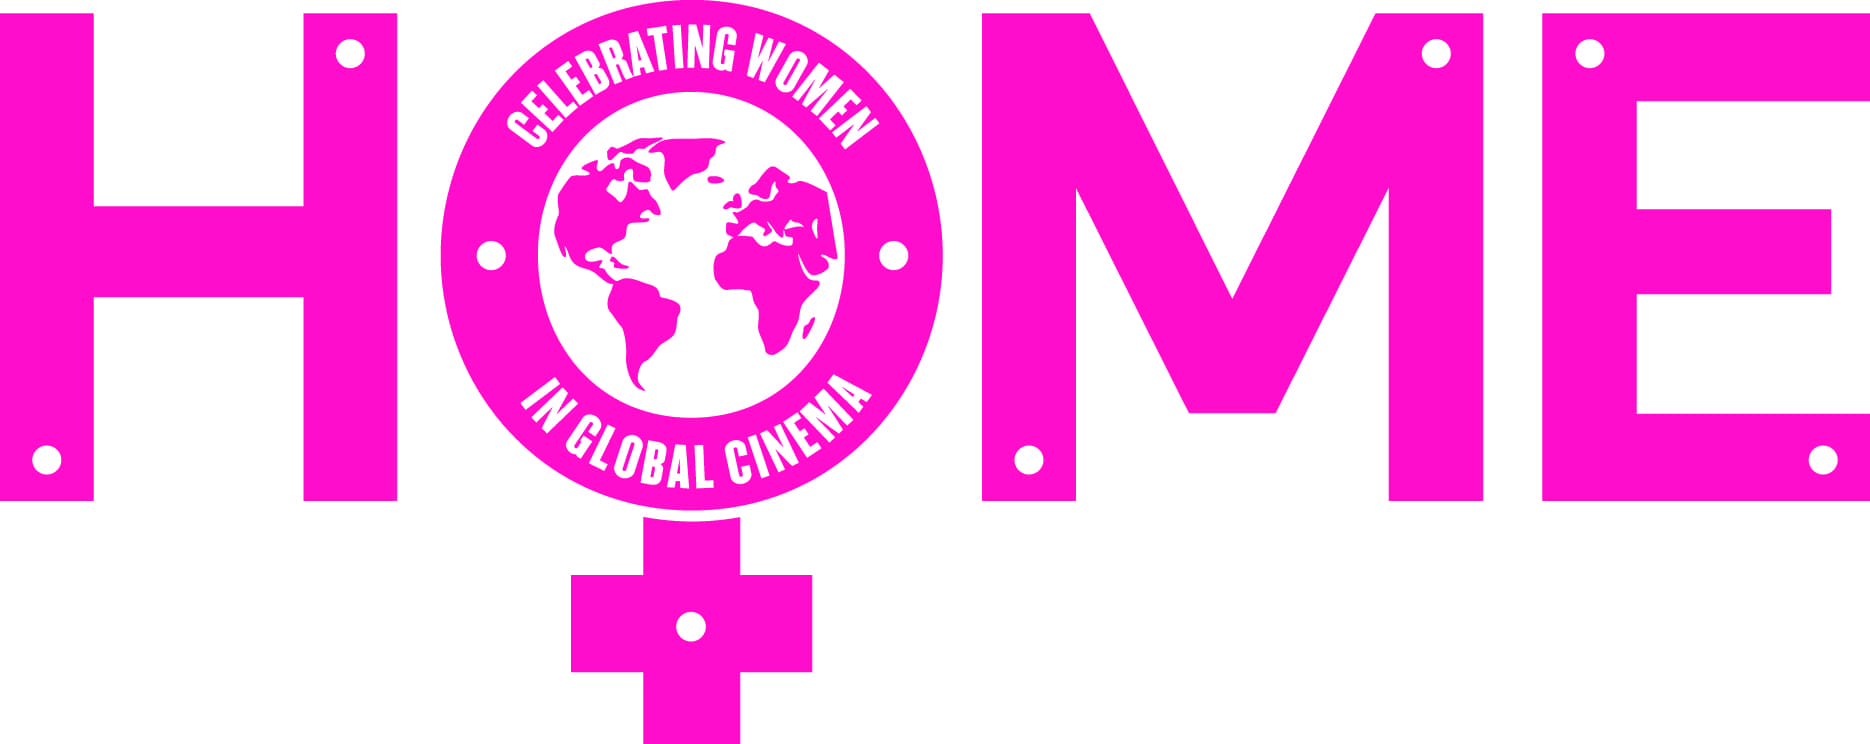 cwigc-logo-incorporated-into-home-logo-pink.jpg